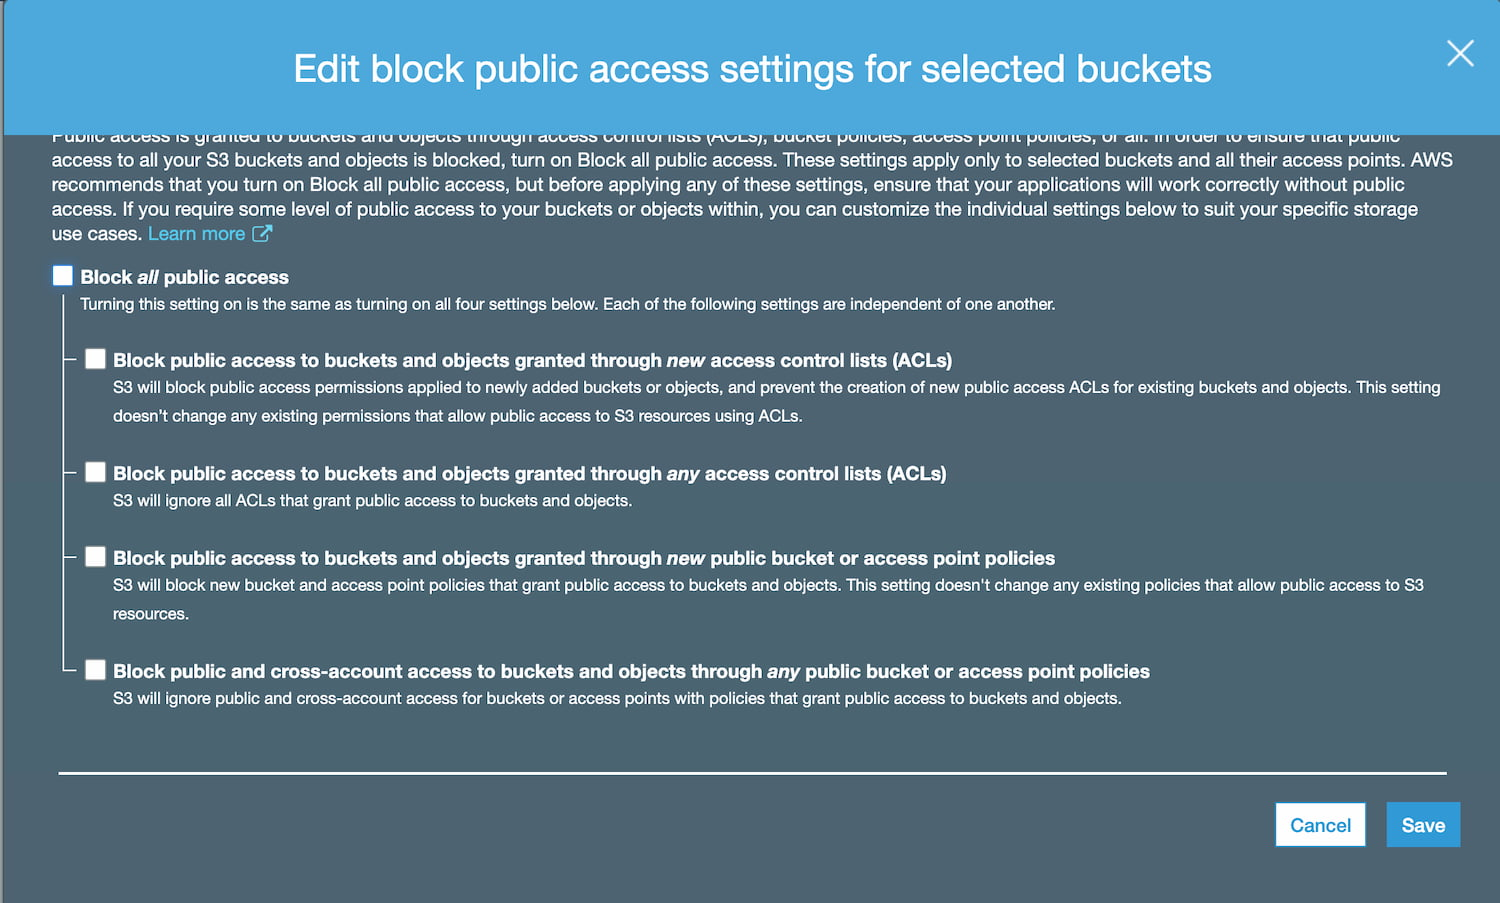 Edit S3 buckets public access settings